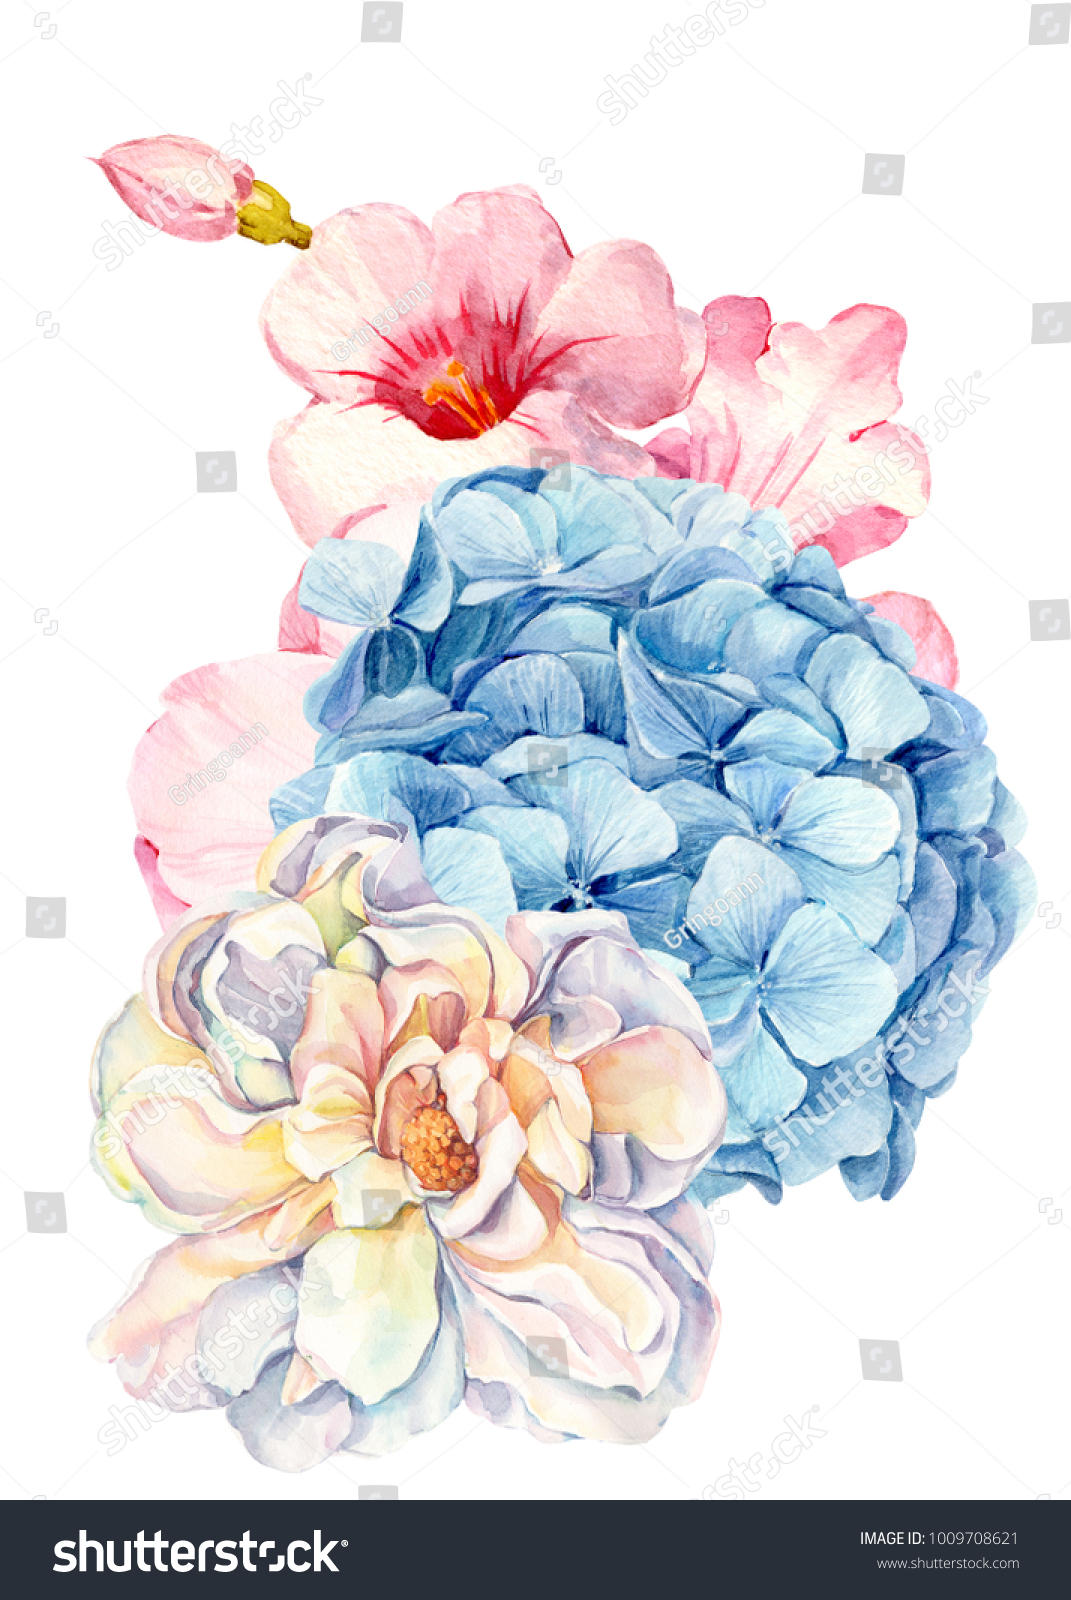 Watercolor hand drawing bouquet flowers roses stock illustration watercolor hand drawing bouquet of flowers roses white hydrangea blue izmirmasajfo